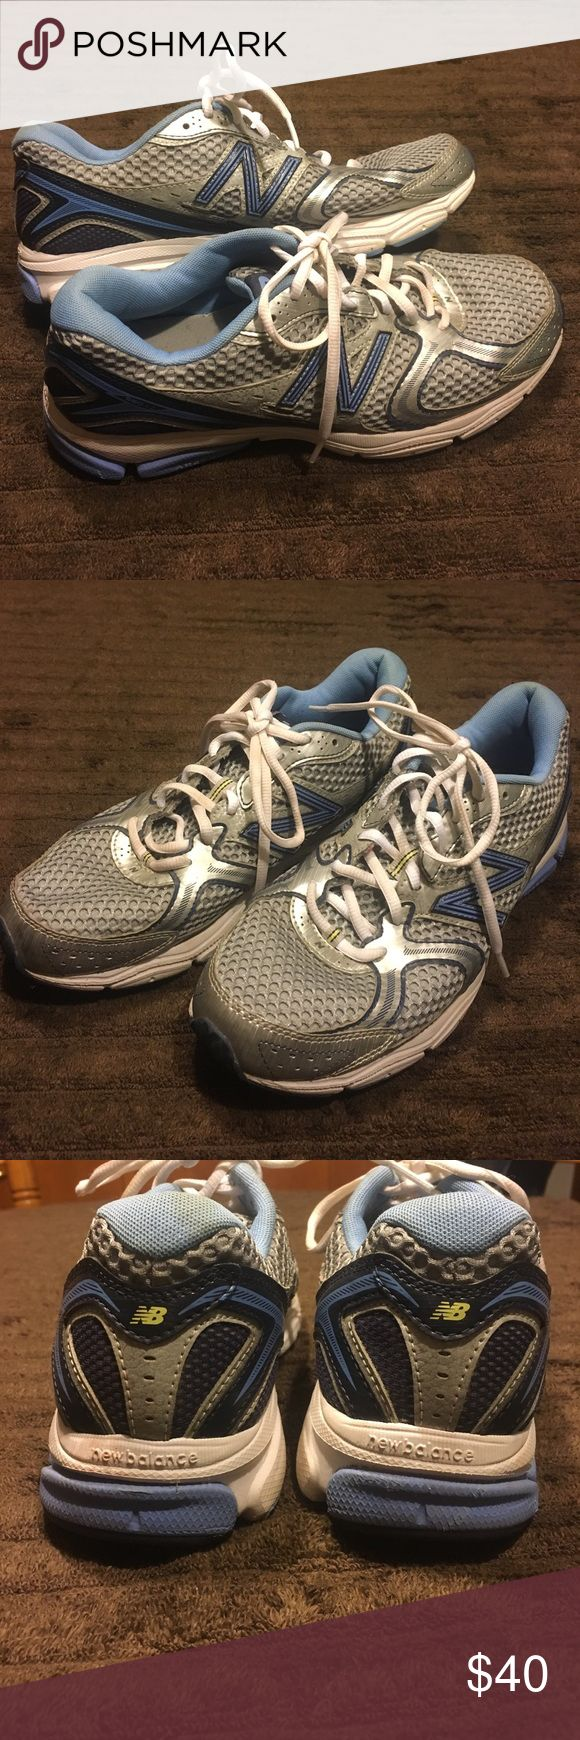 New Balance Gym Shoes New Balance Women's Gym Shoes. Size 10 They are Grey Sliver White and a few different shades of Blue. These are in very good condition. All offers will be considered. Bundle and Save!!! New Balance Shoes Athletic Shoes